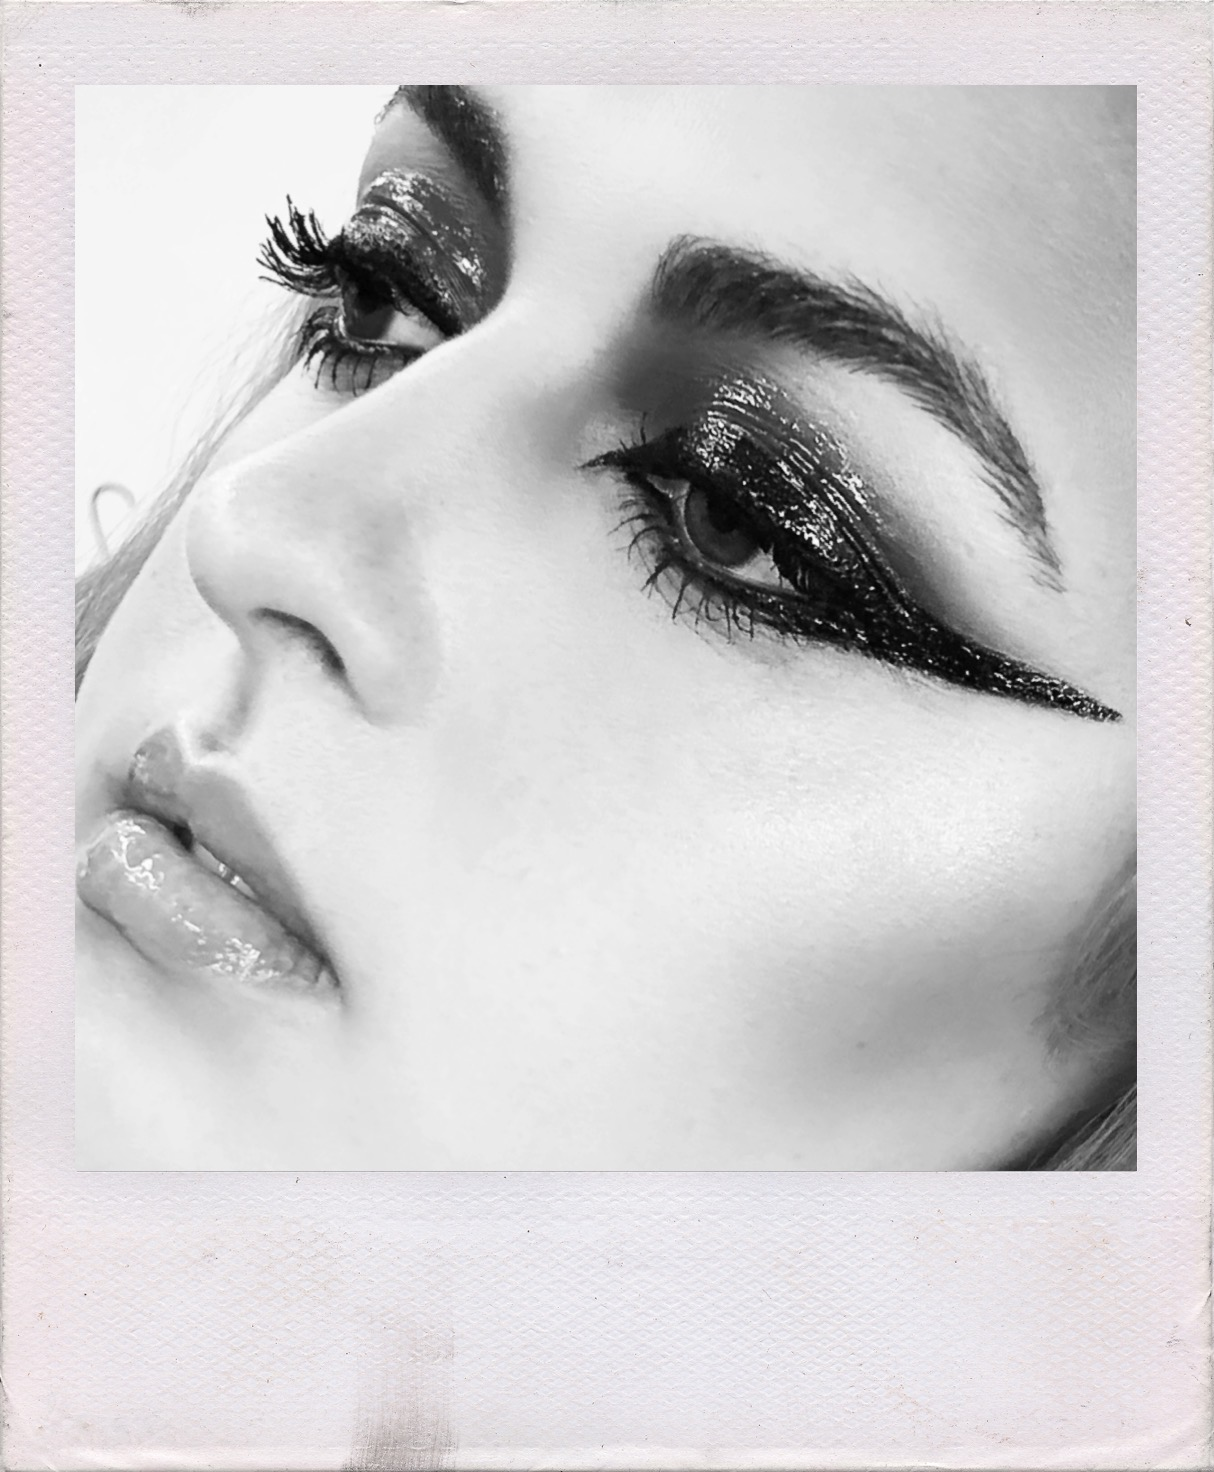 MAKEUP for B&W PHOTOGRAPHY for CMS